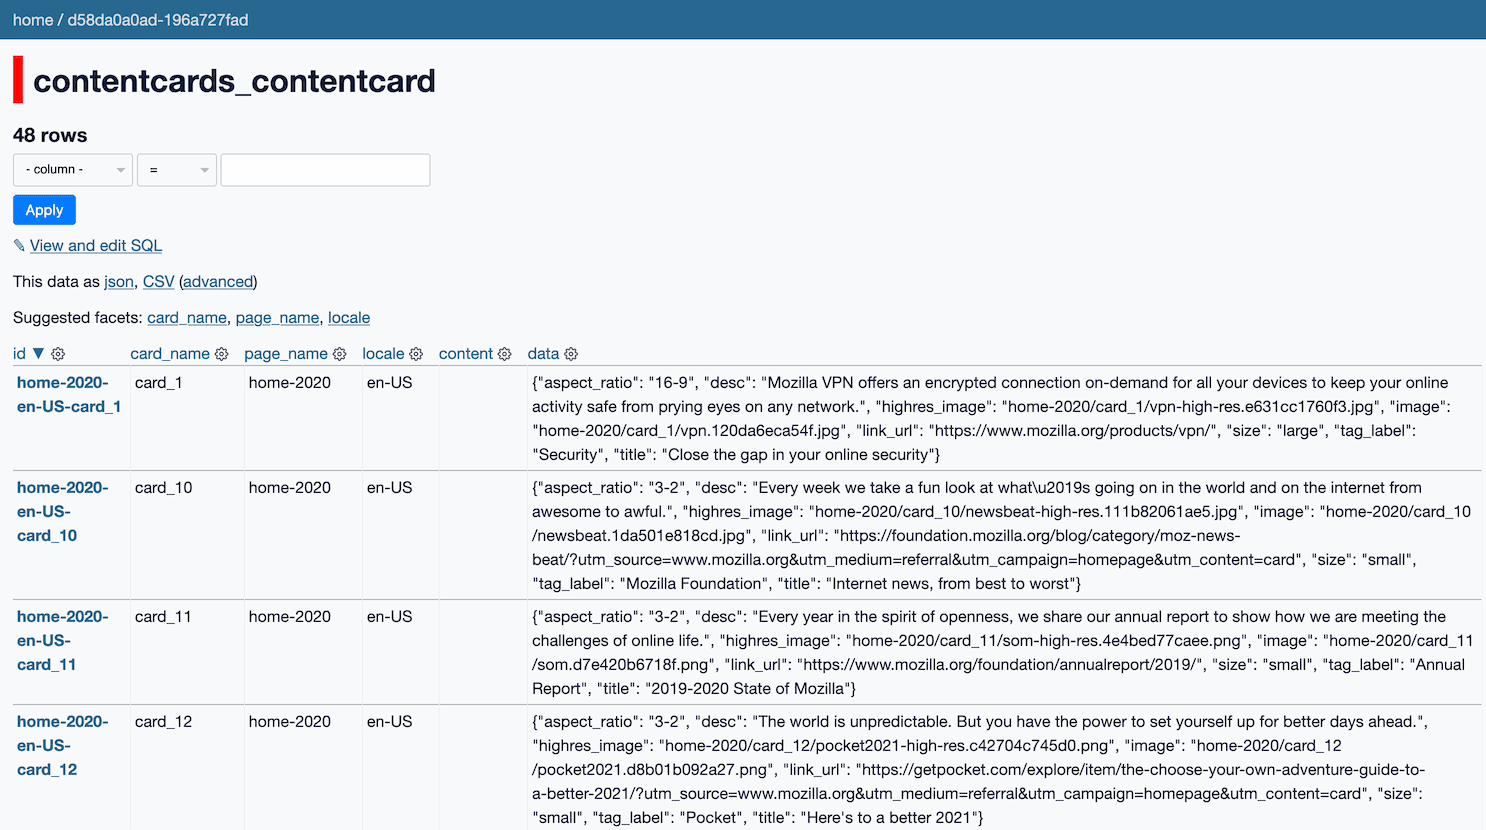 Datasette running against the Mozilla contentncards_contentcard table